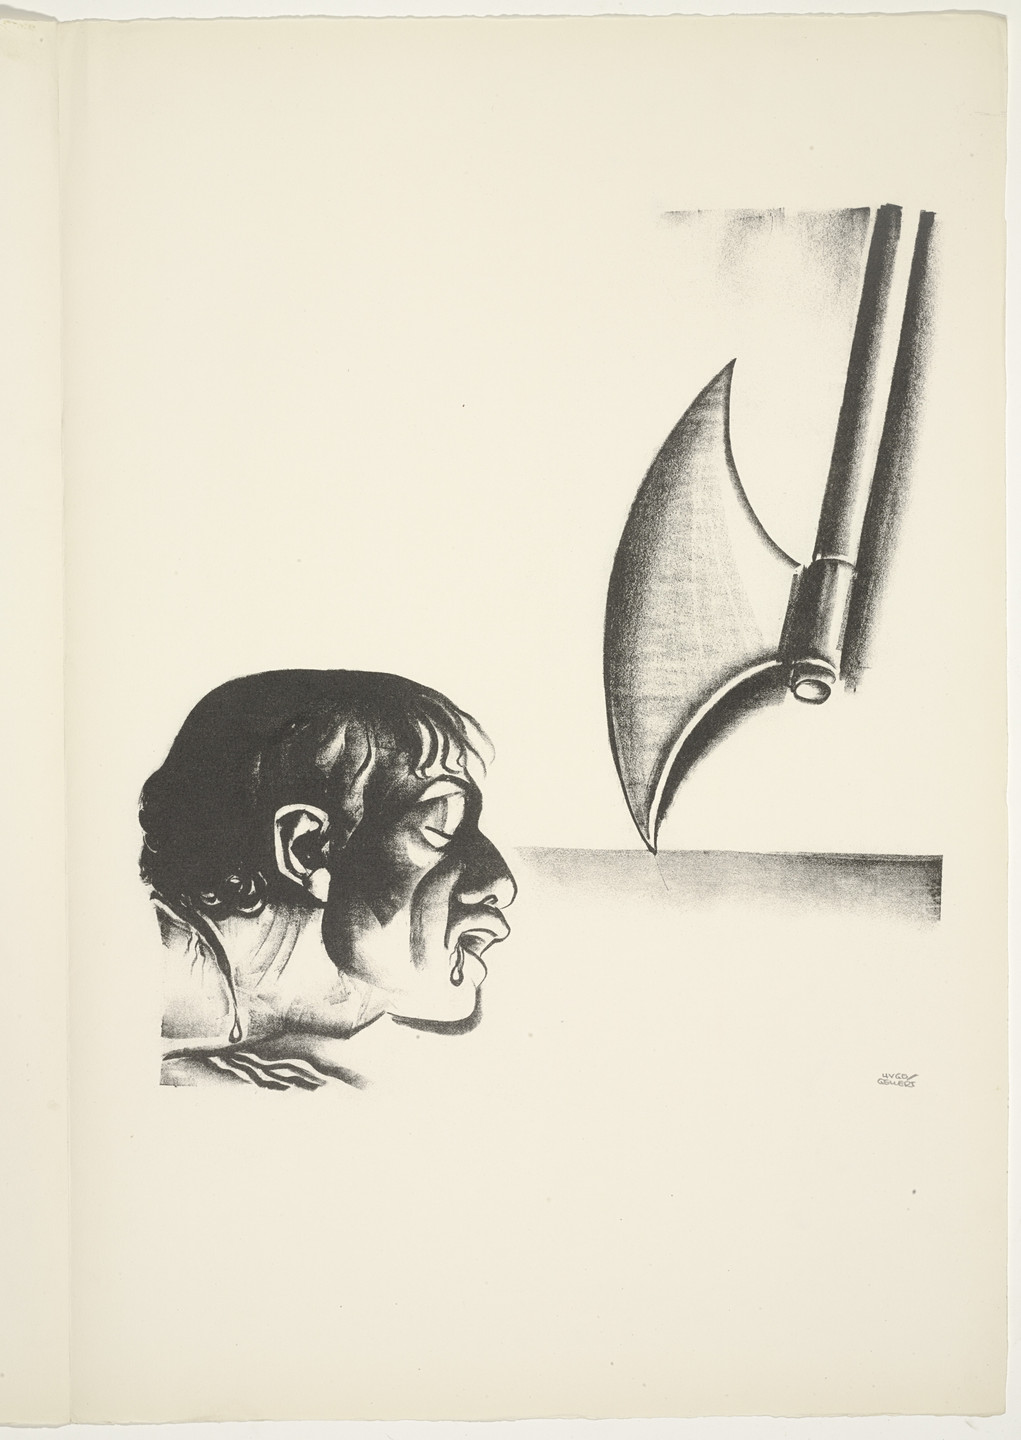 Hugo Gellert. Plate (folio 24) from 'Capital' in Pictures. 1933